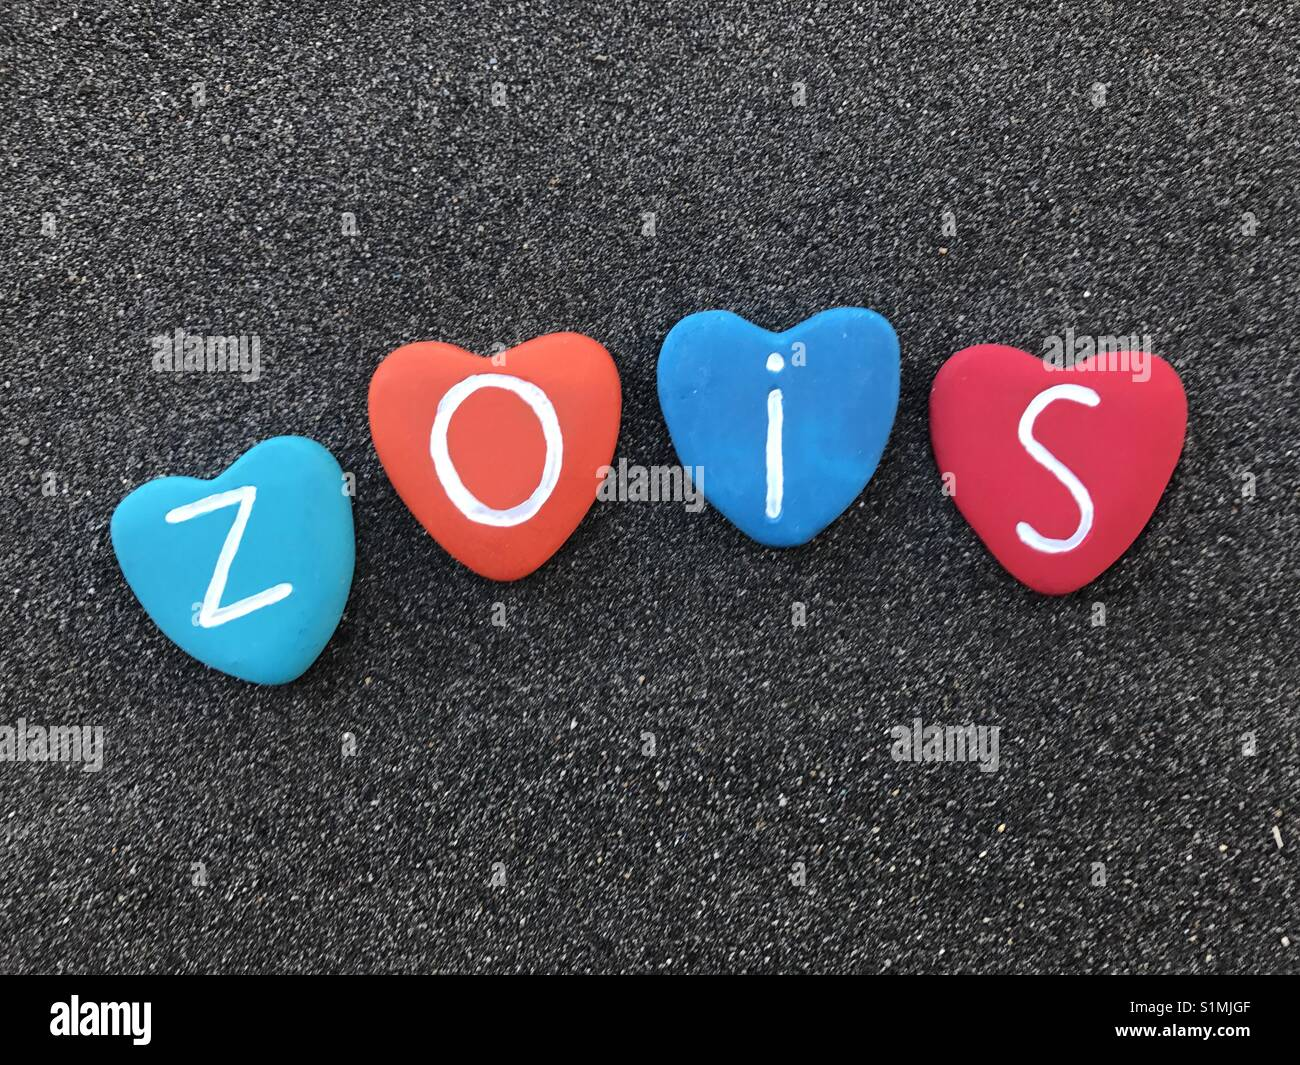 Zois, greek origin masculine name with colored heart stones over black volcanic sand - Stock Image